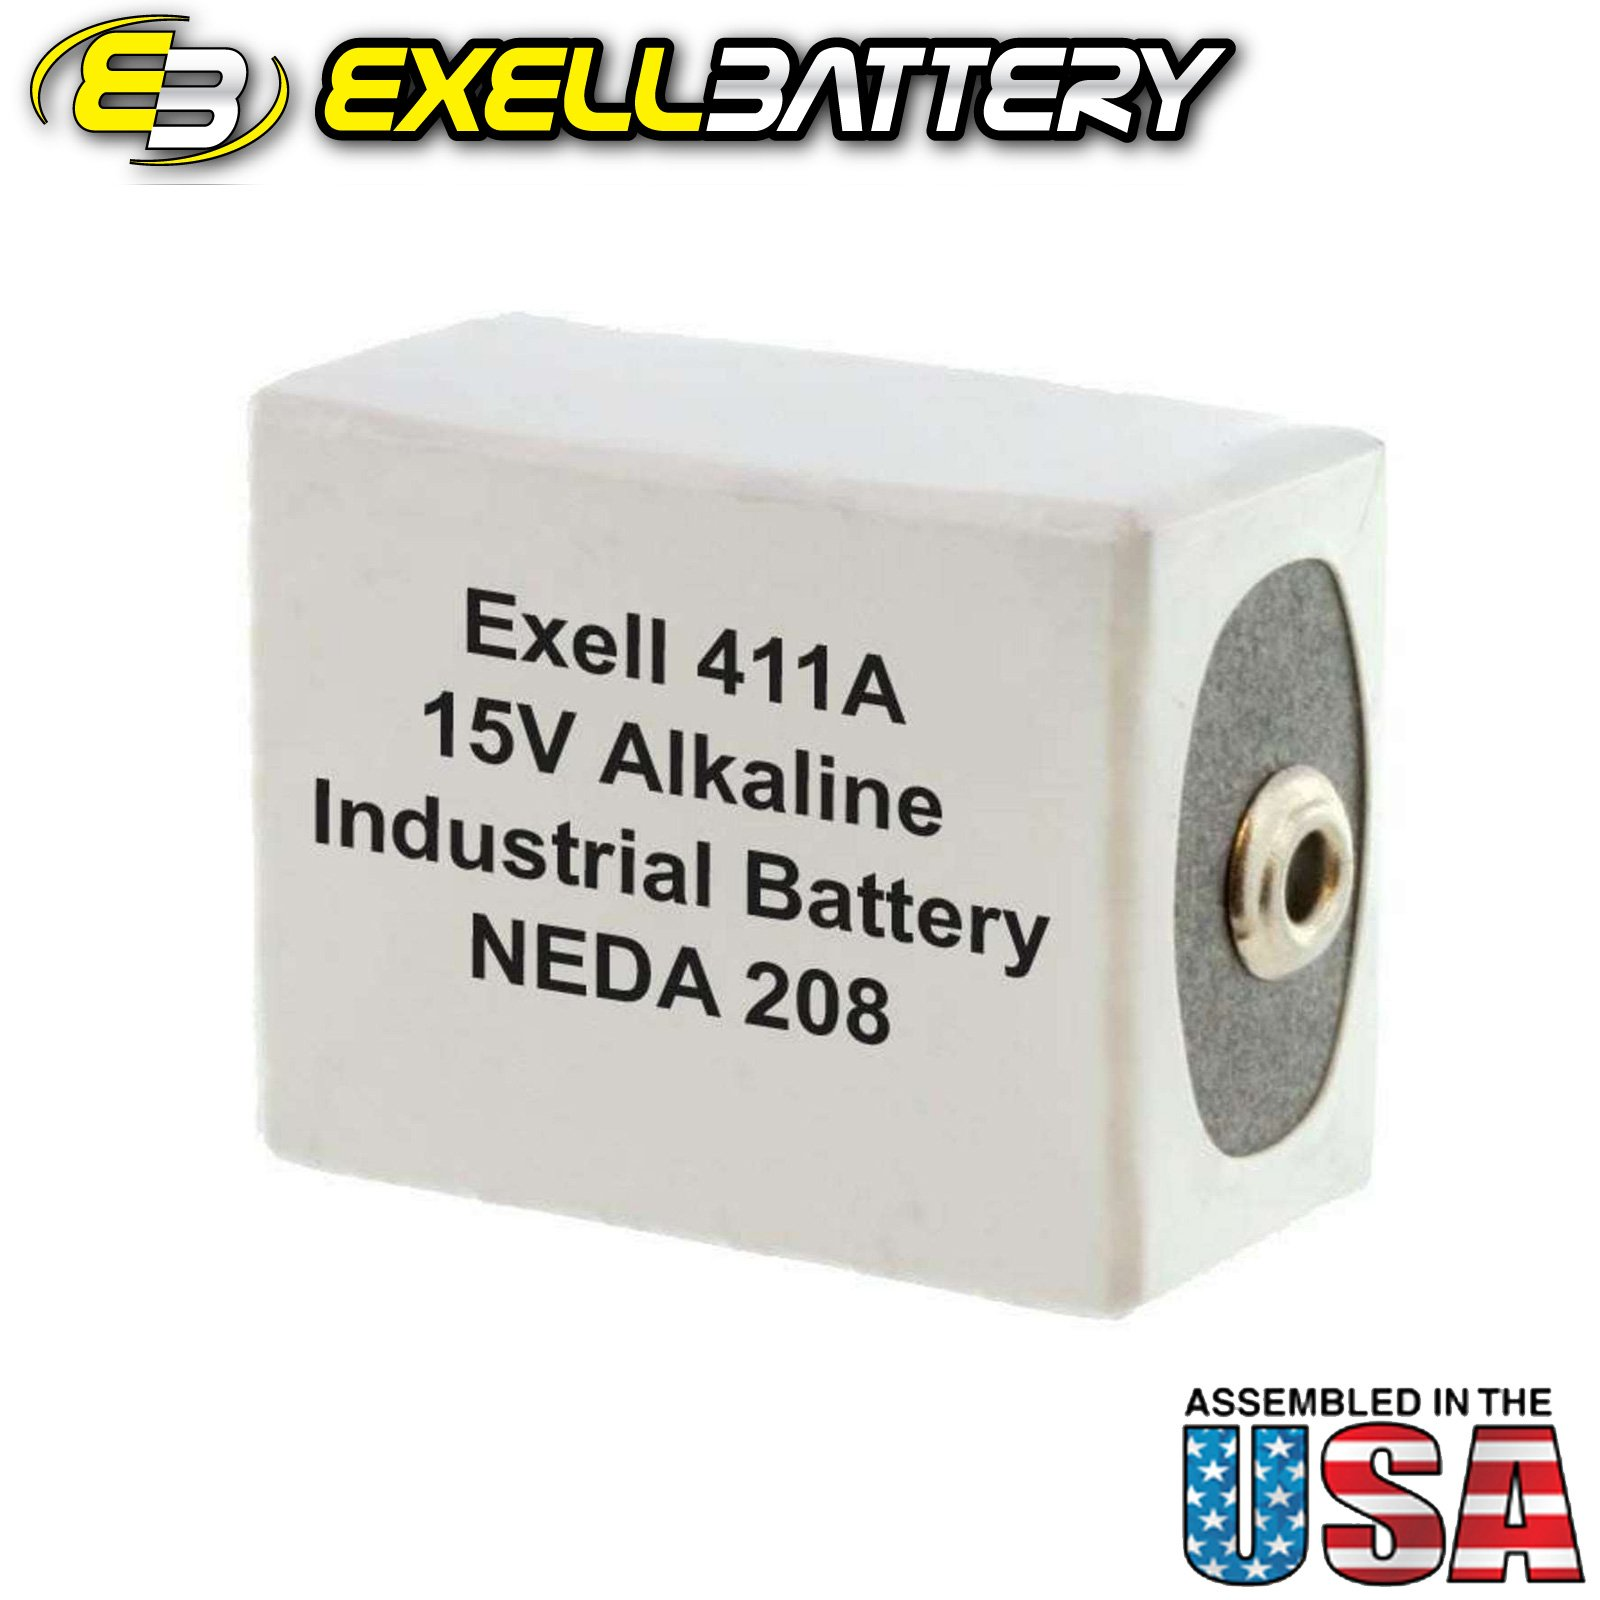 50pc Exell 411A Alkaline 15V Battery Replaces NEDA 208, 10F20, BLR121 by Exell Battery (Image #2)